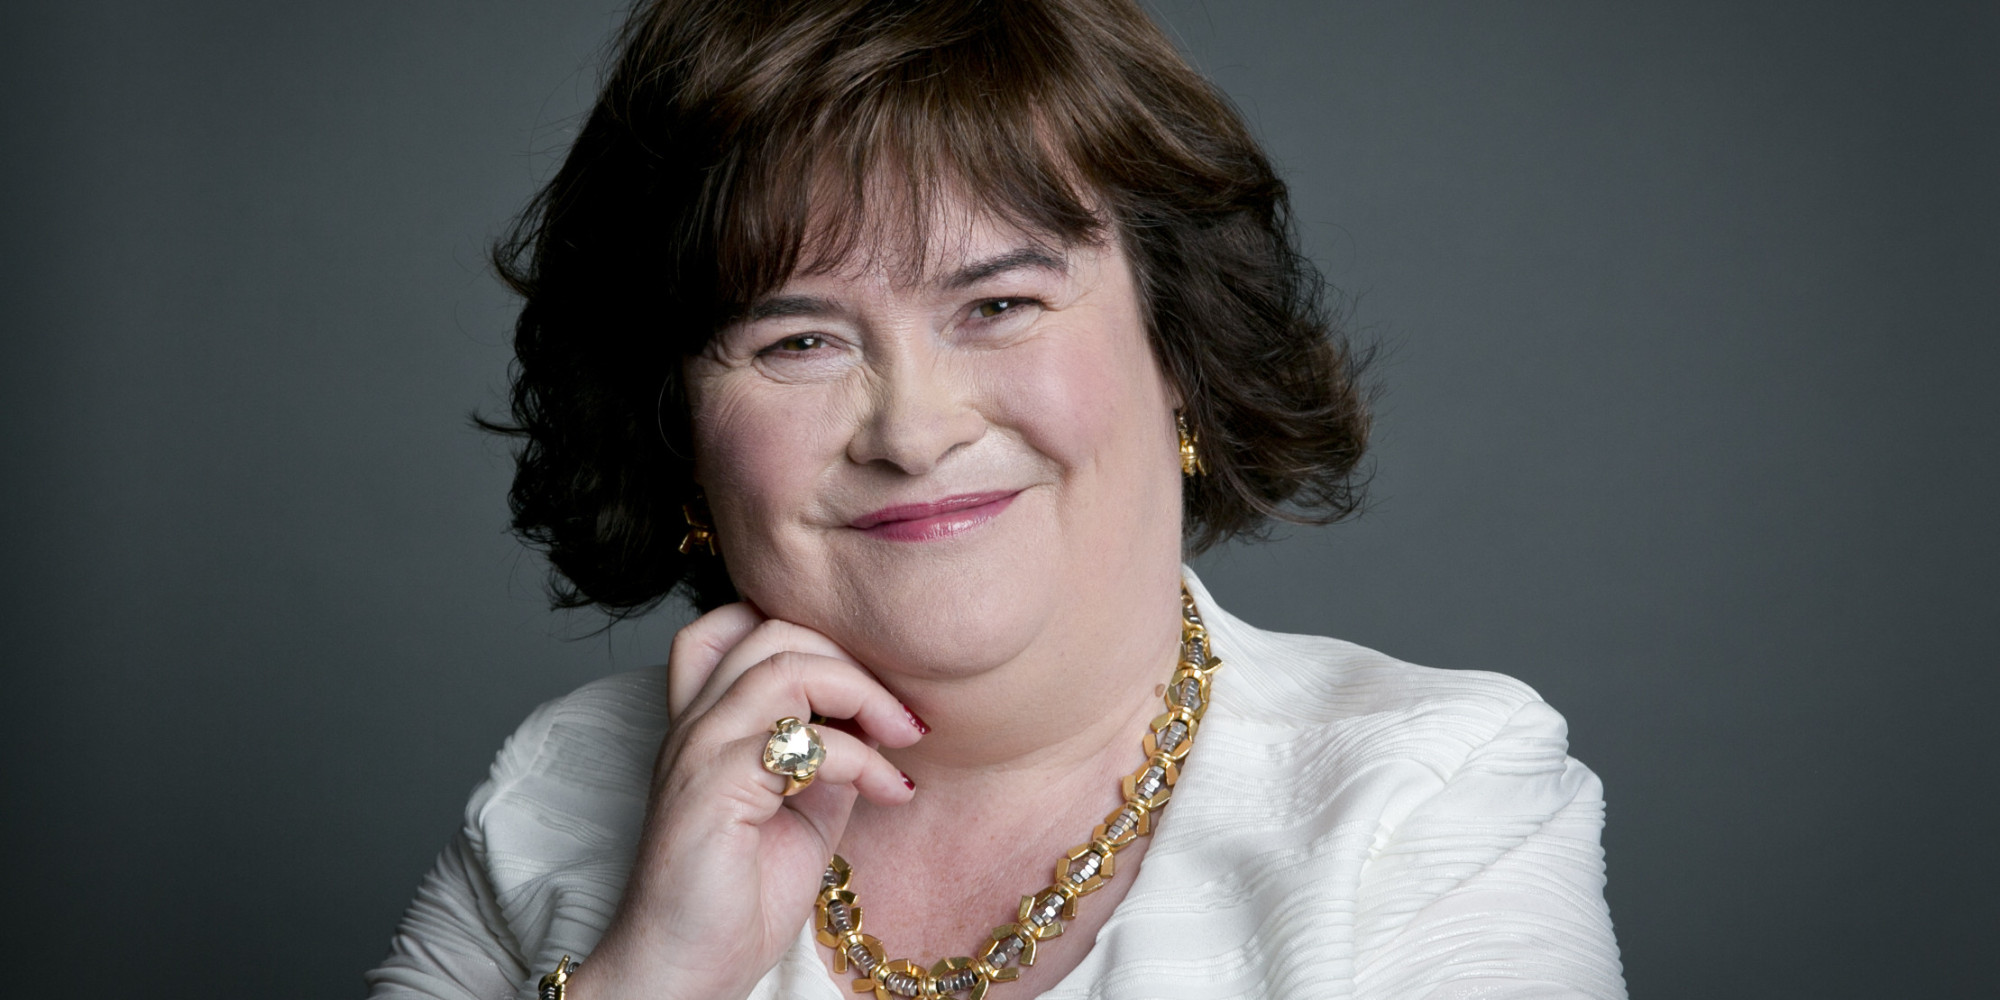 susan boyle i dreamed a dream скачатьsusan boyle i dreamed a dream, susan boyle now, susan boyle 2017, susan boyle weight loss, susan boyle wiki, susan boyle wild horses, susan boyle hallelujah, susan boyle unlikely superstar, susan boyle amazing grace, susan boyle memory, susan boyle i dreamed a dream скачать, susan boyle i dreamed a dream lyrics, susan boyle net worth, susan boyle talent, susan boyle mp3, susan boyle hallelujah mp3, susan boyle cry me a river, susan boyle enjoy the silence, susan boyle i dreamed a dream mp3, susan boyle wikipedia